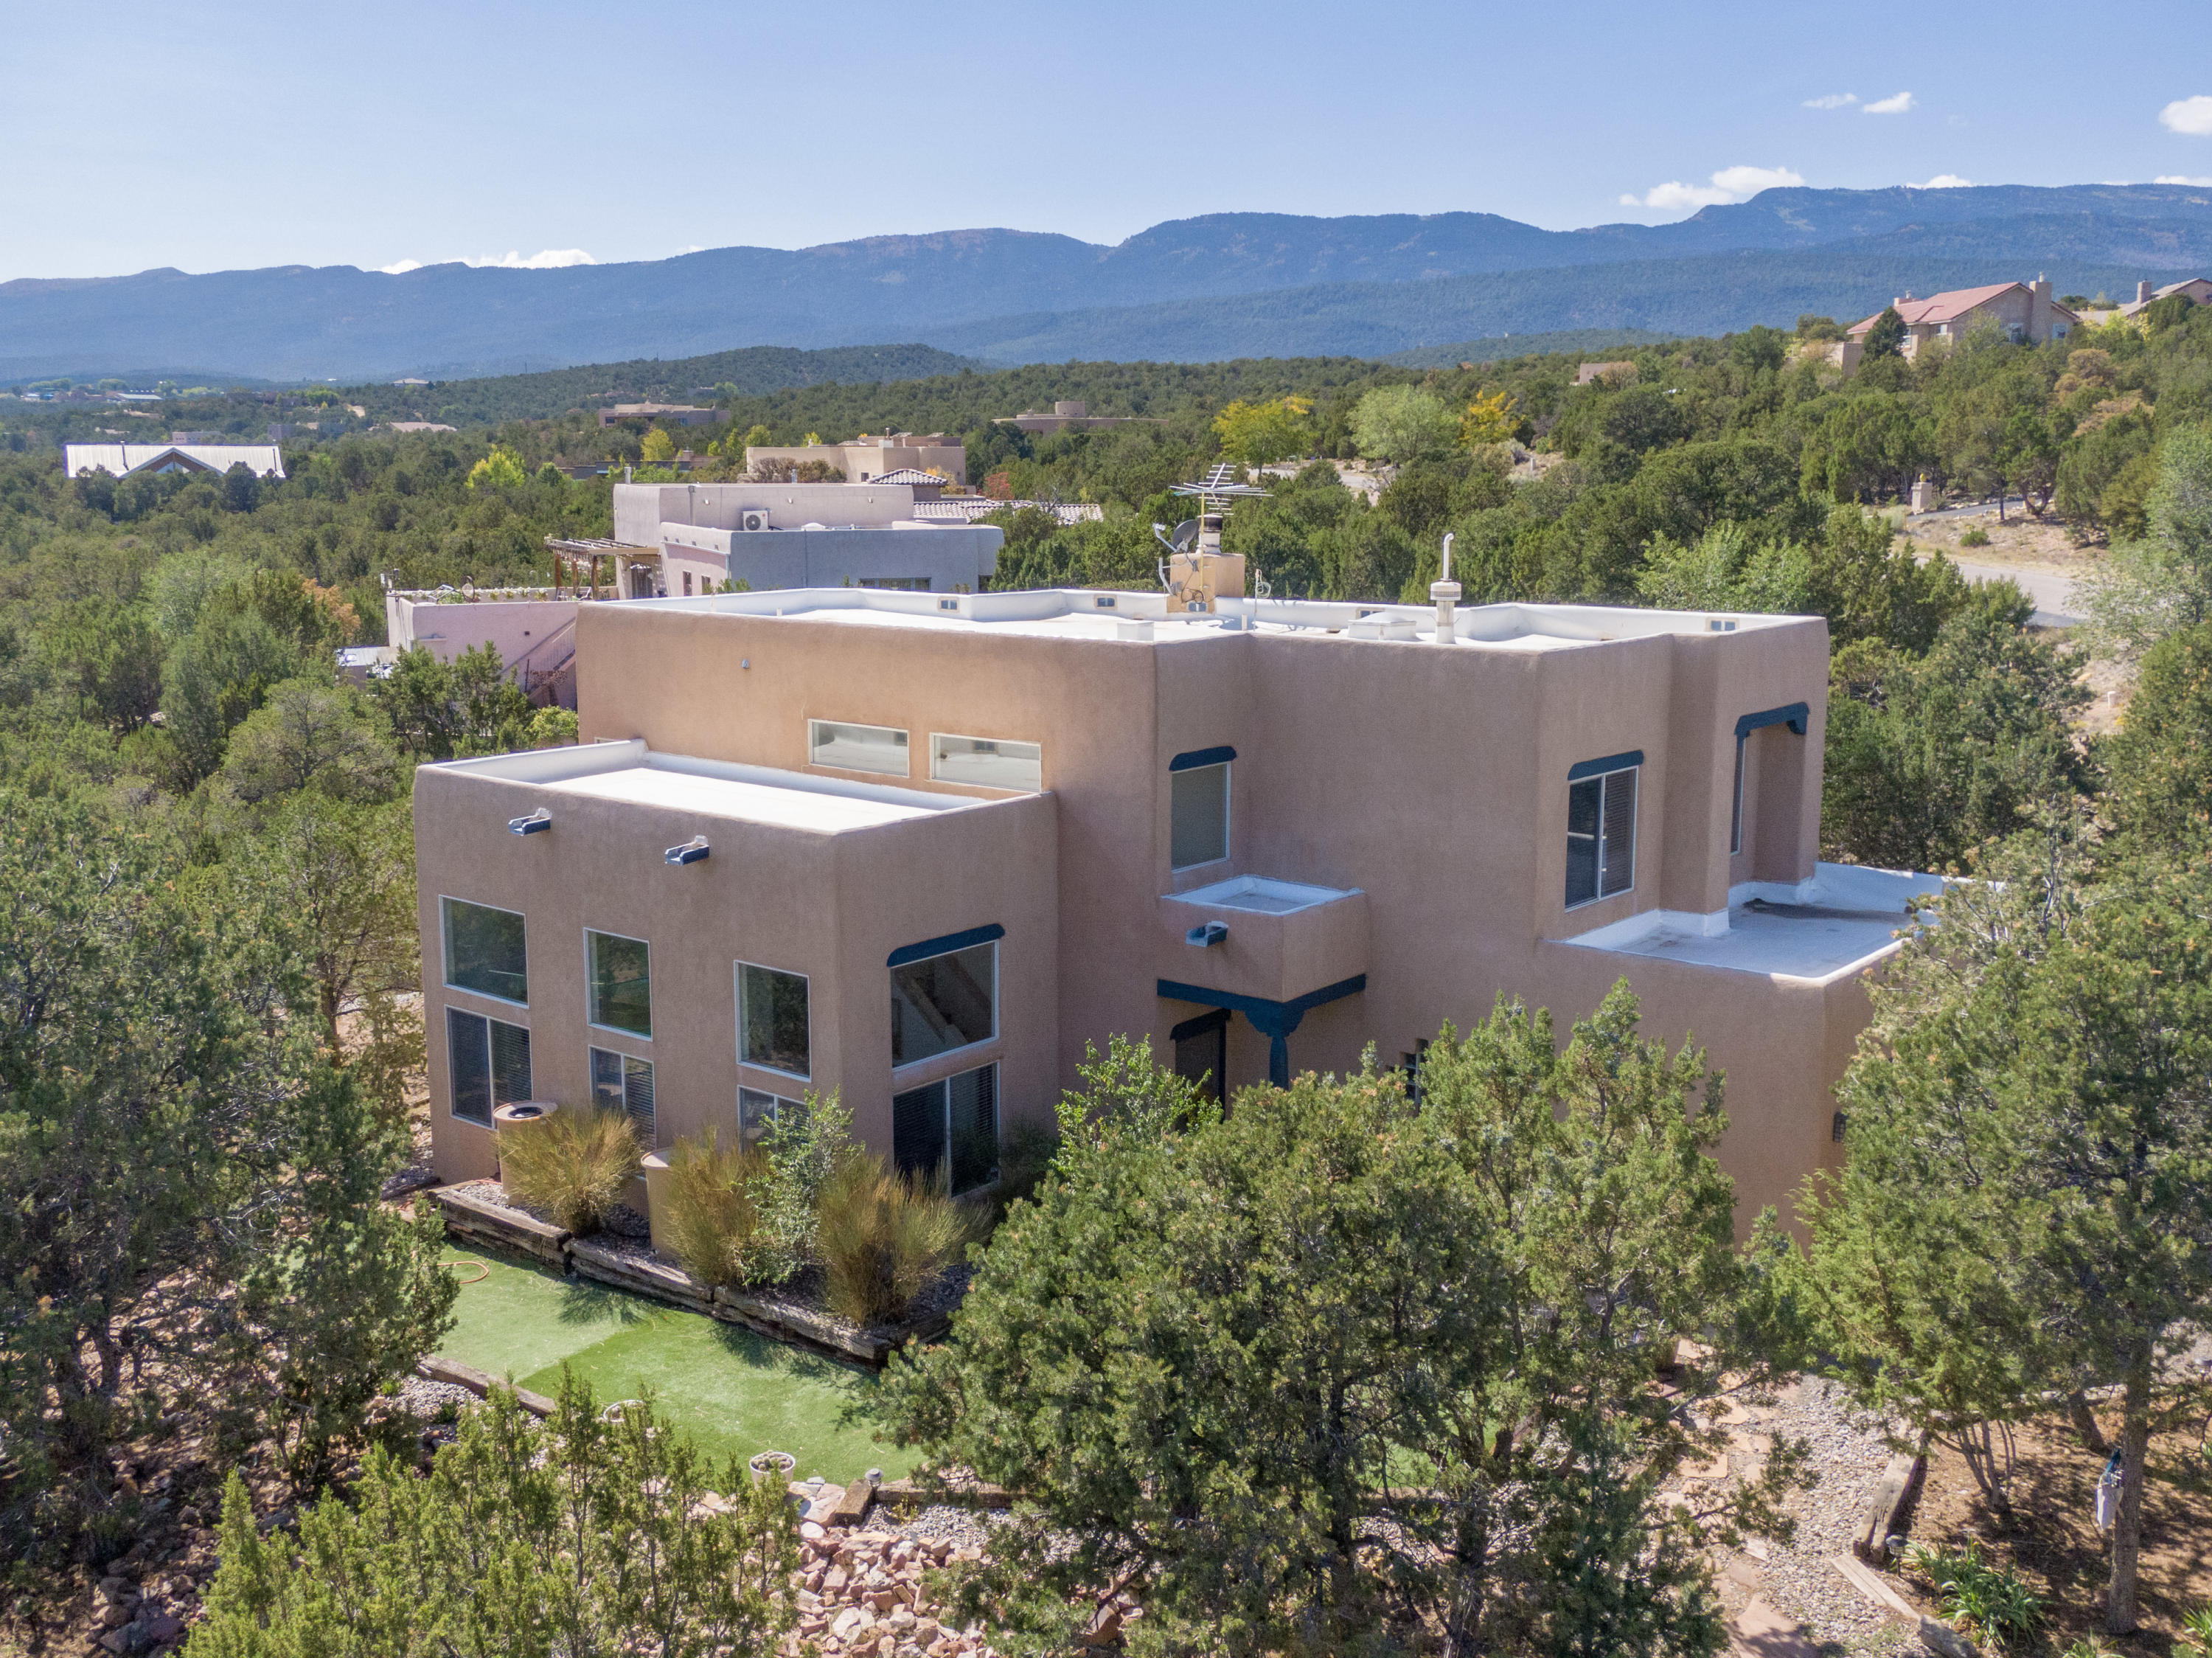 Welcome to this Bright, Beautiful, 1-Owner, Move-in Ready Mountain Home in Sandia Park! *Pool & Tennis Court Access for $250/yr!* Nestled on a Large 1.27 Acre Lot in the Desirable Paako Community, 44 Chaco Loop presents you with Breathtaking Mountain Views from Dawn to Dusk and a Forest of Lush, Green Trees! This Home offers 2 Light-Filled Living Areas and a Clean, Modern Kitchen with Stainless Appliances, Solid-Surface Counters, Island, Coffee Bar, and Breakfast Nook. Let a Custom, Wood Burning Fireplace w/ Log Lighter be your Family Room's Focal Point this Fall! Your Master Suite features a Private Balcony, Double Sinks, Garden Tub, Separate Shower, Walk-in Closet. Tile & Laminate Flooring Throughout. No carpet! Zoned, Radiant Heating. Tankless Water Heater provides Instant Hot Water.